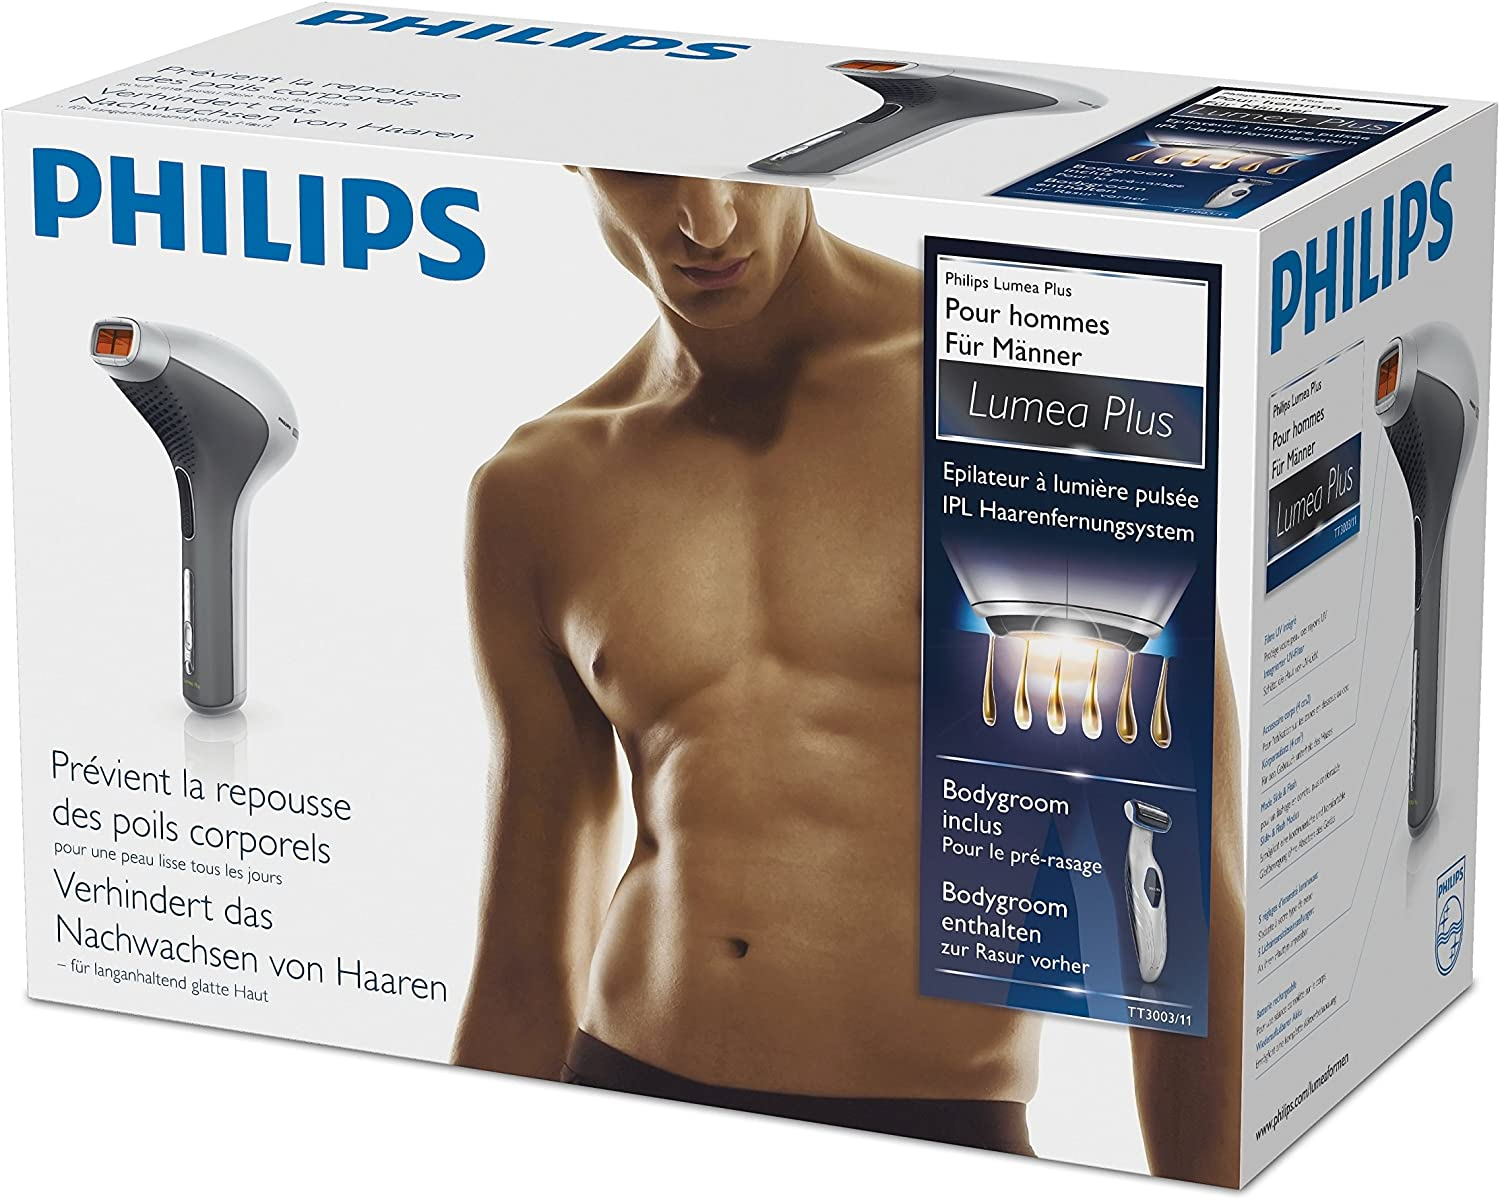 Philips Lumea Plus Slide & Flash TT3003/11 - Depiladora por luz ...